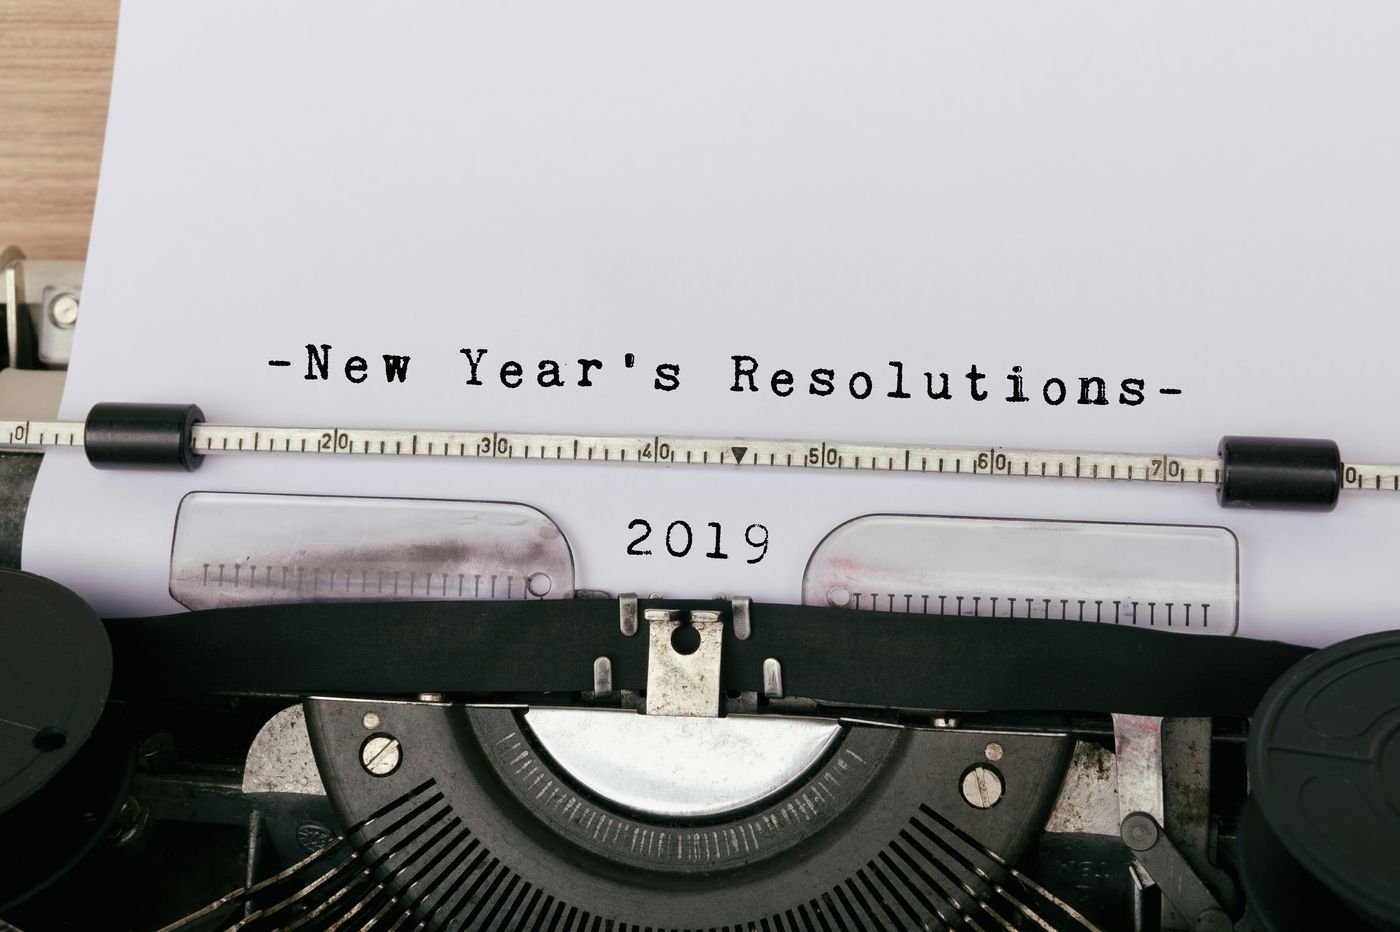 New Year's resolutions: Been there, not doing that | Opinion